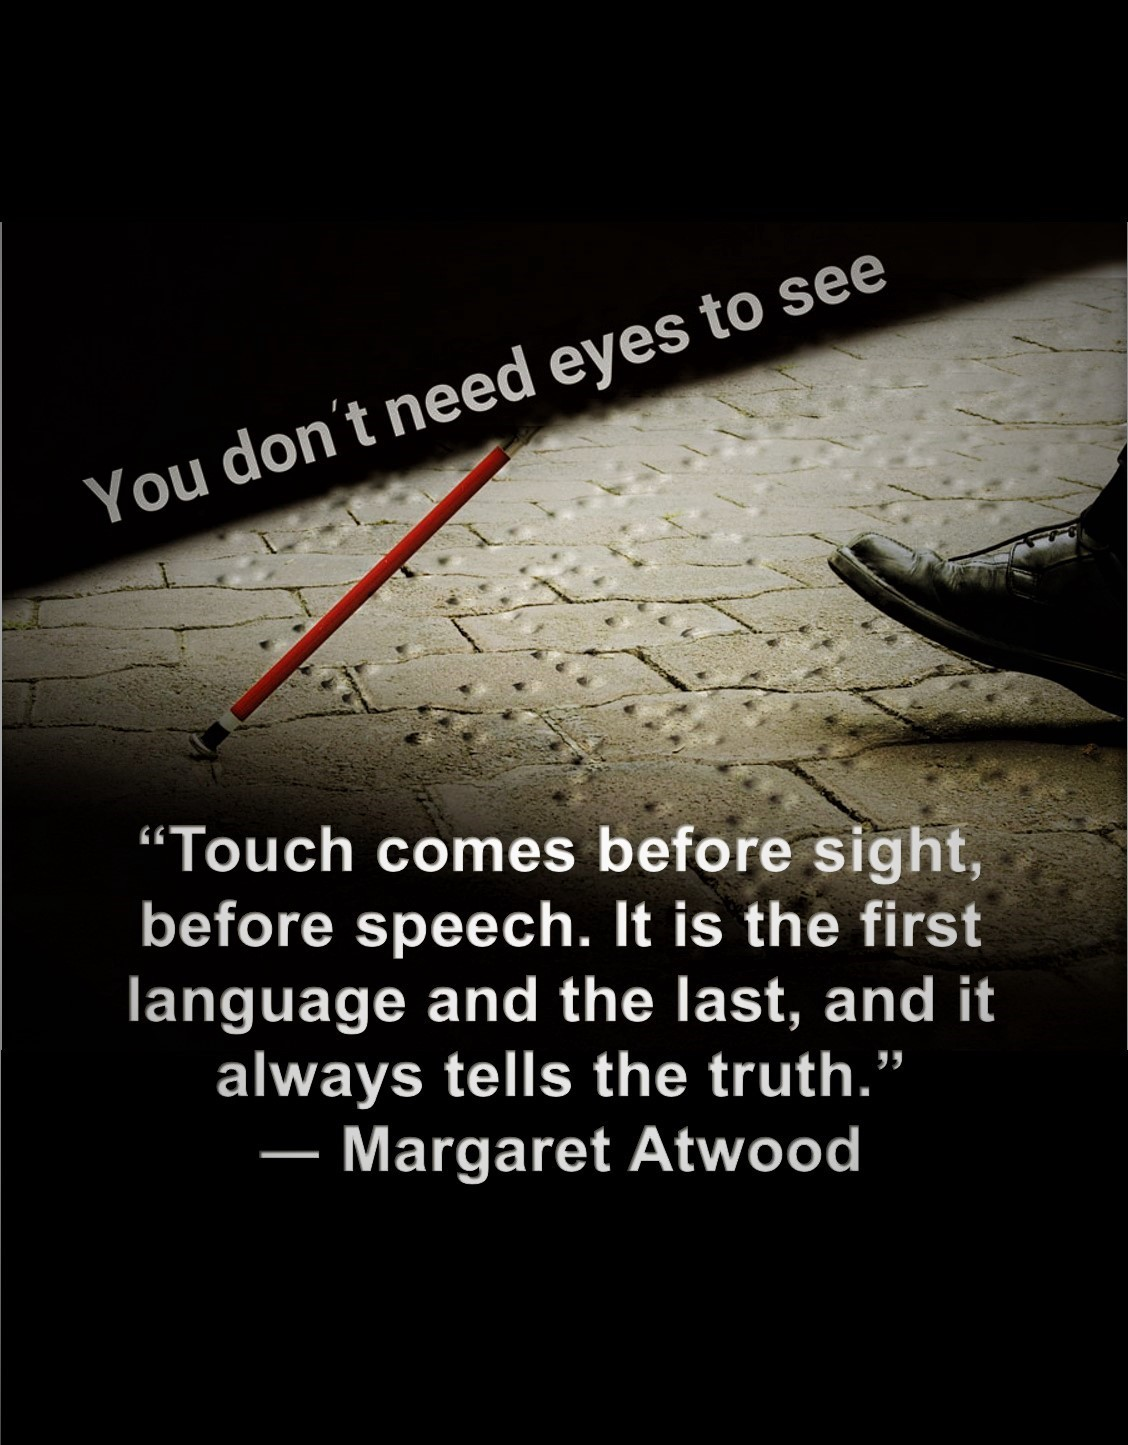 Touch comes before sight, before speech